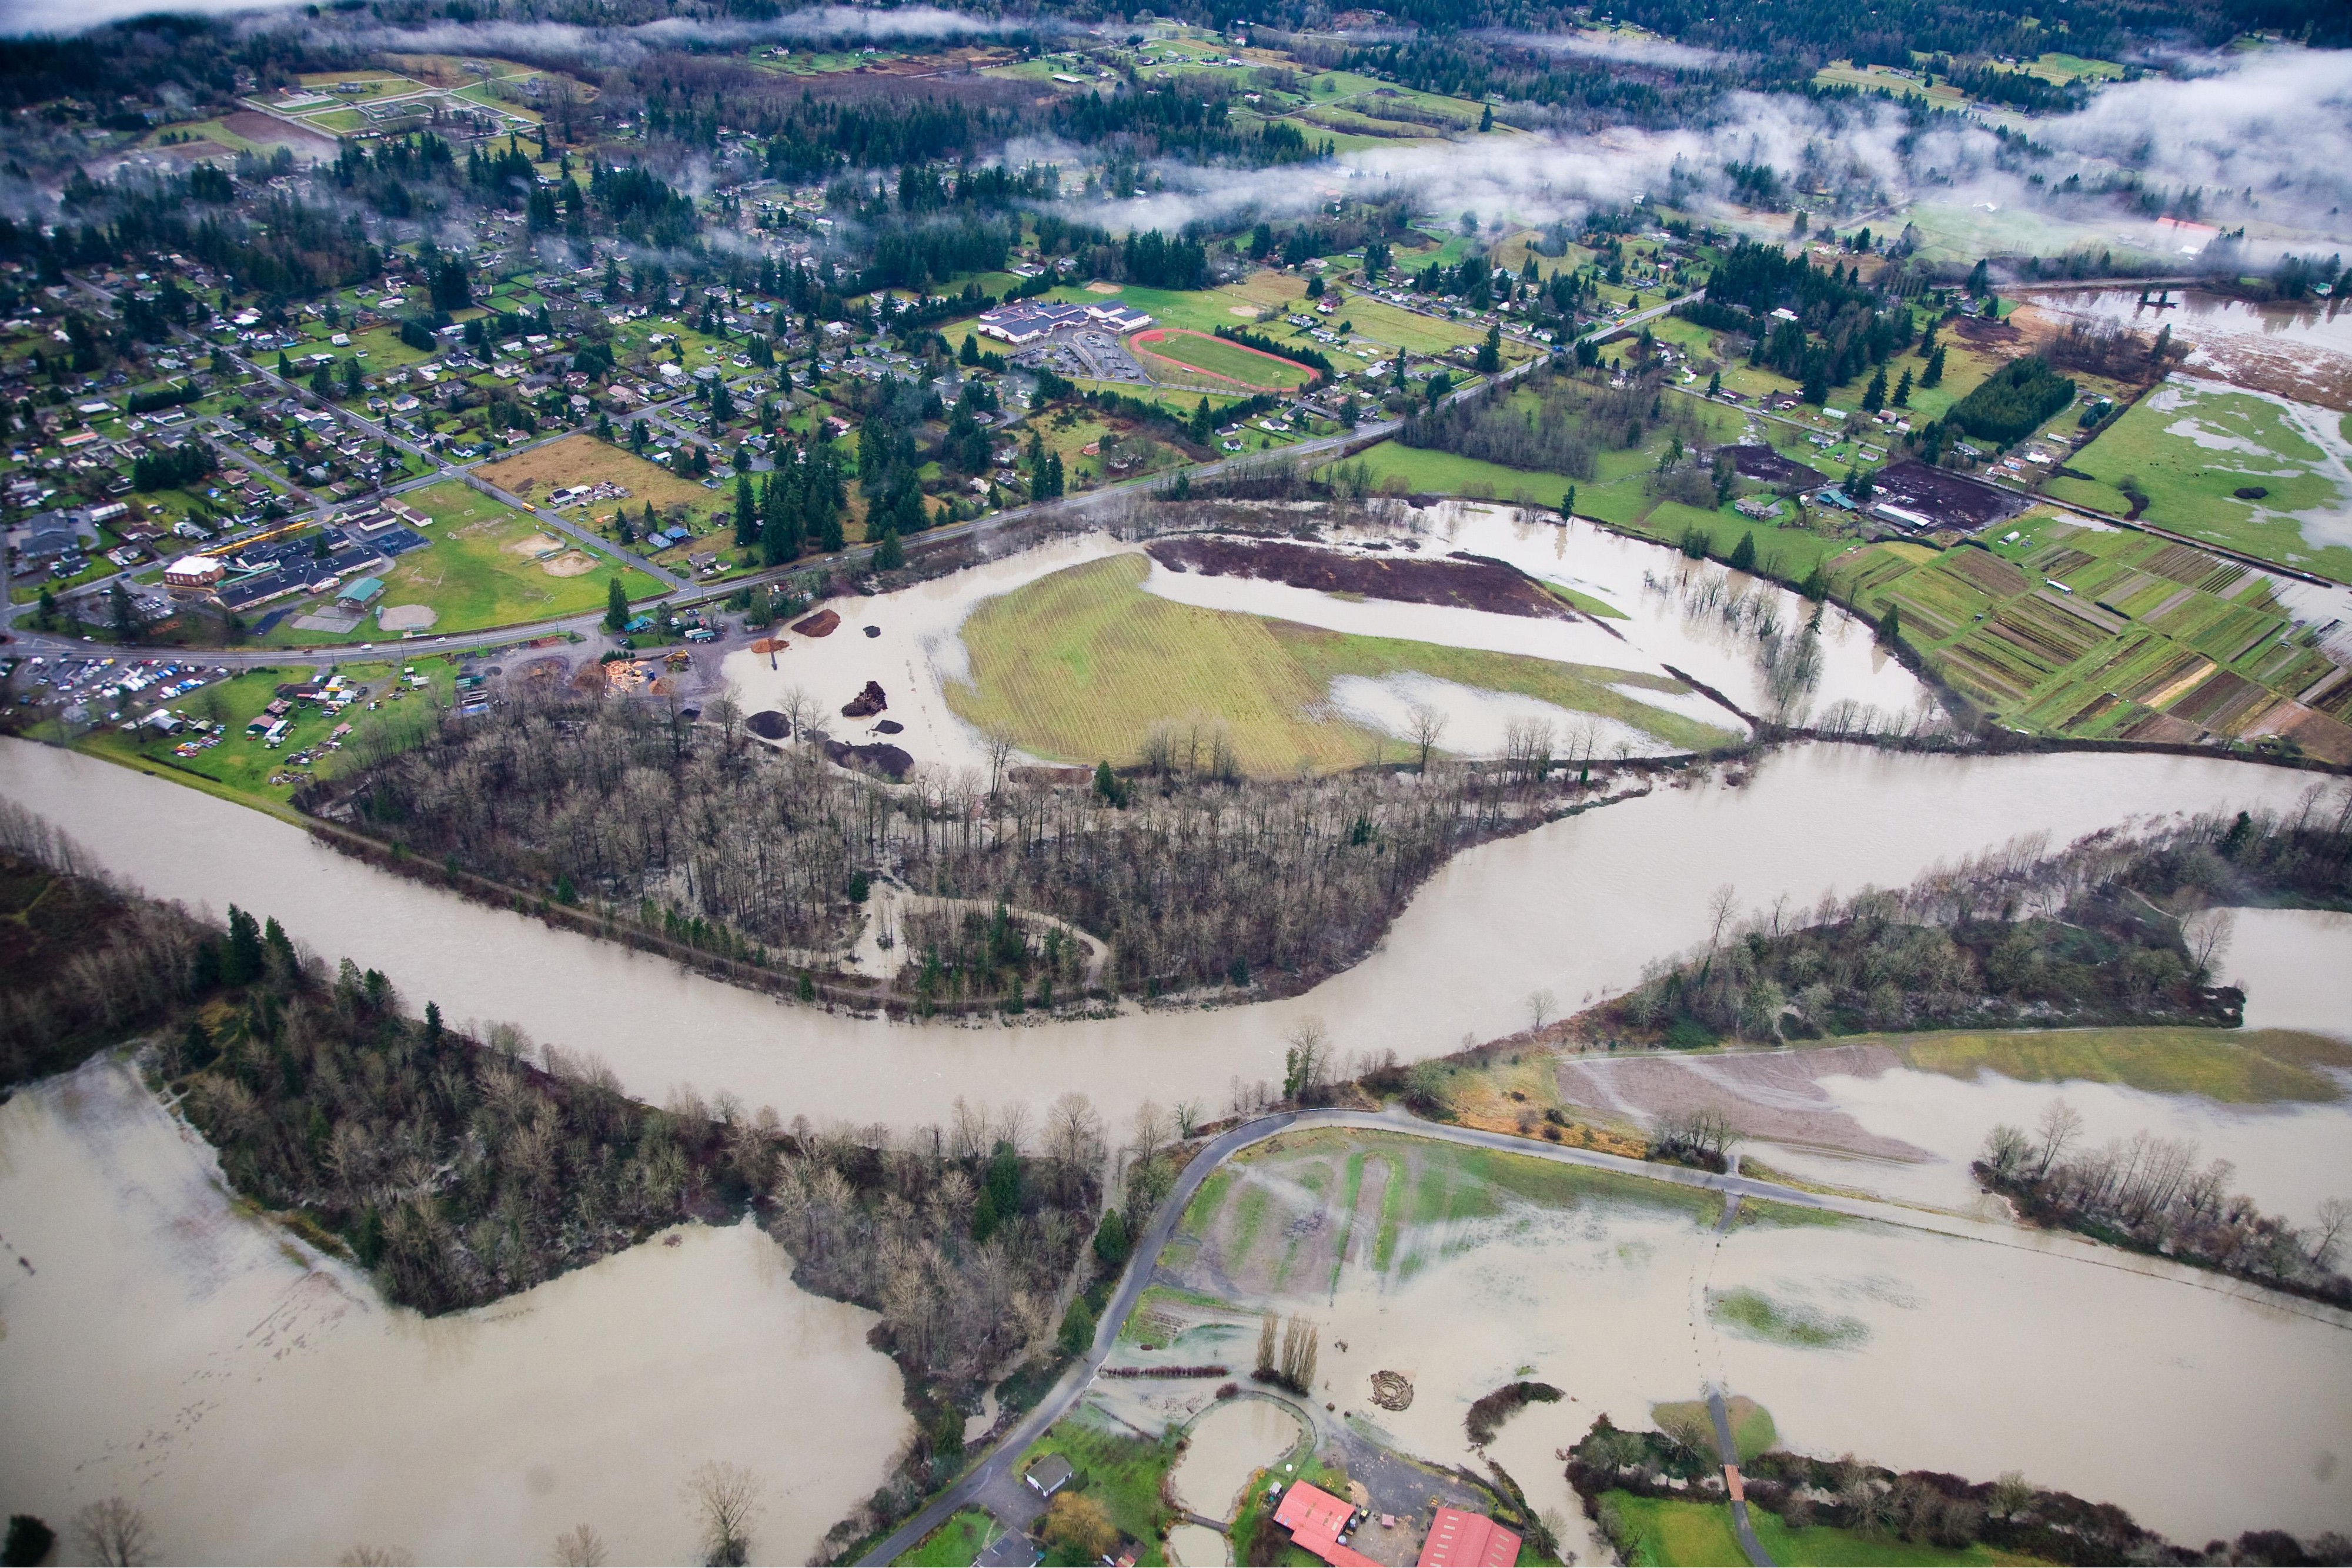 Aerial photo of the Fall City Floodplain Restoration Project, showing the Snoqualmie River and farmland. Photo credit: King County Water and Land Use Division.